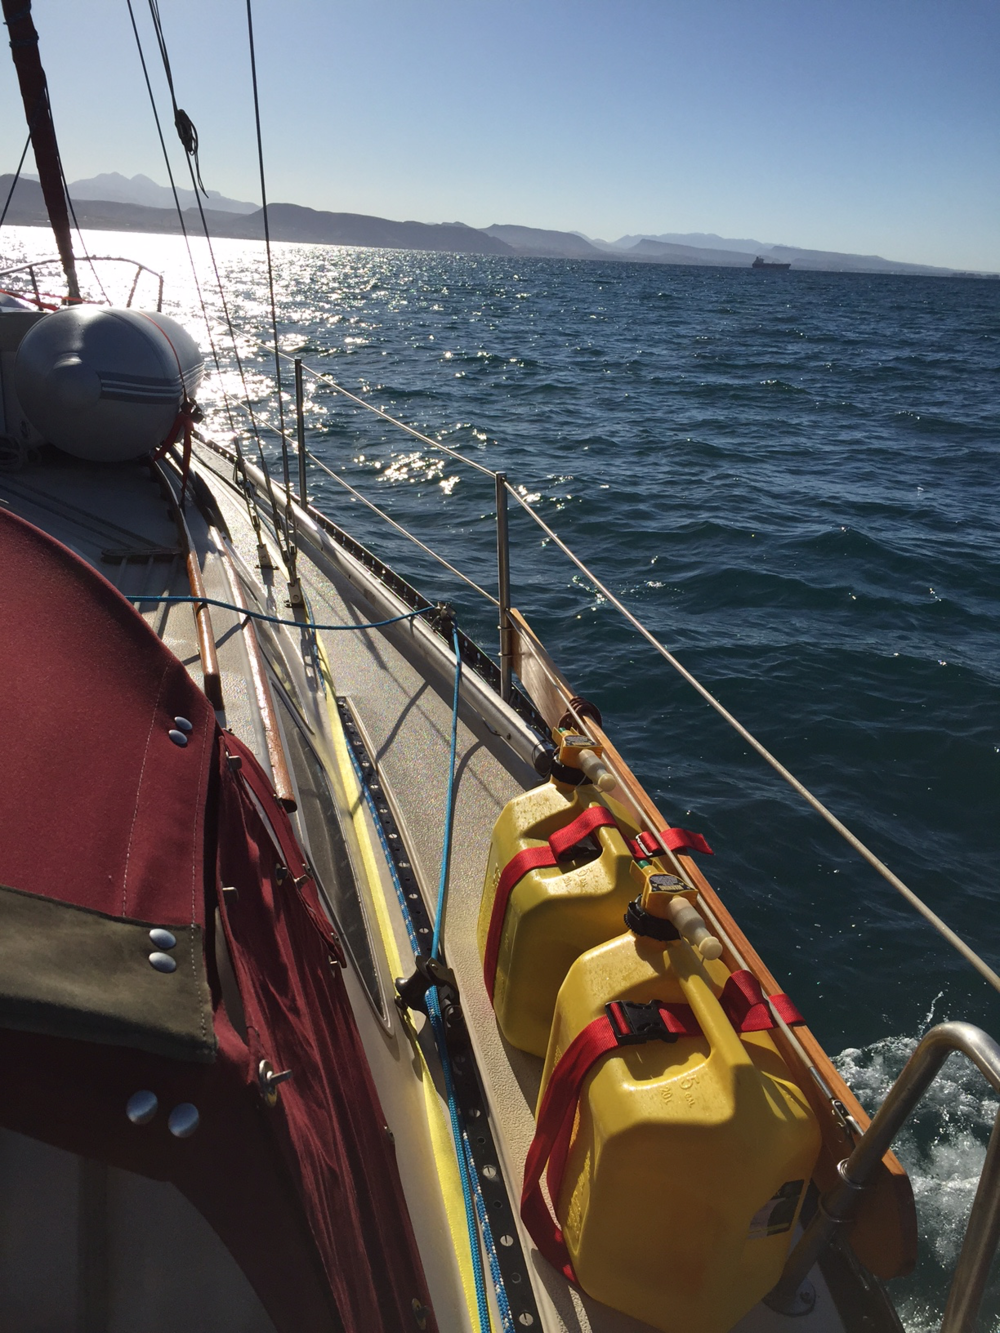 sailing through the La Paz channel - it has the potential to get choppy in here after 15 knots of wind.